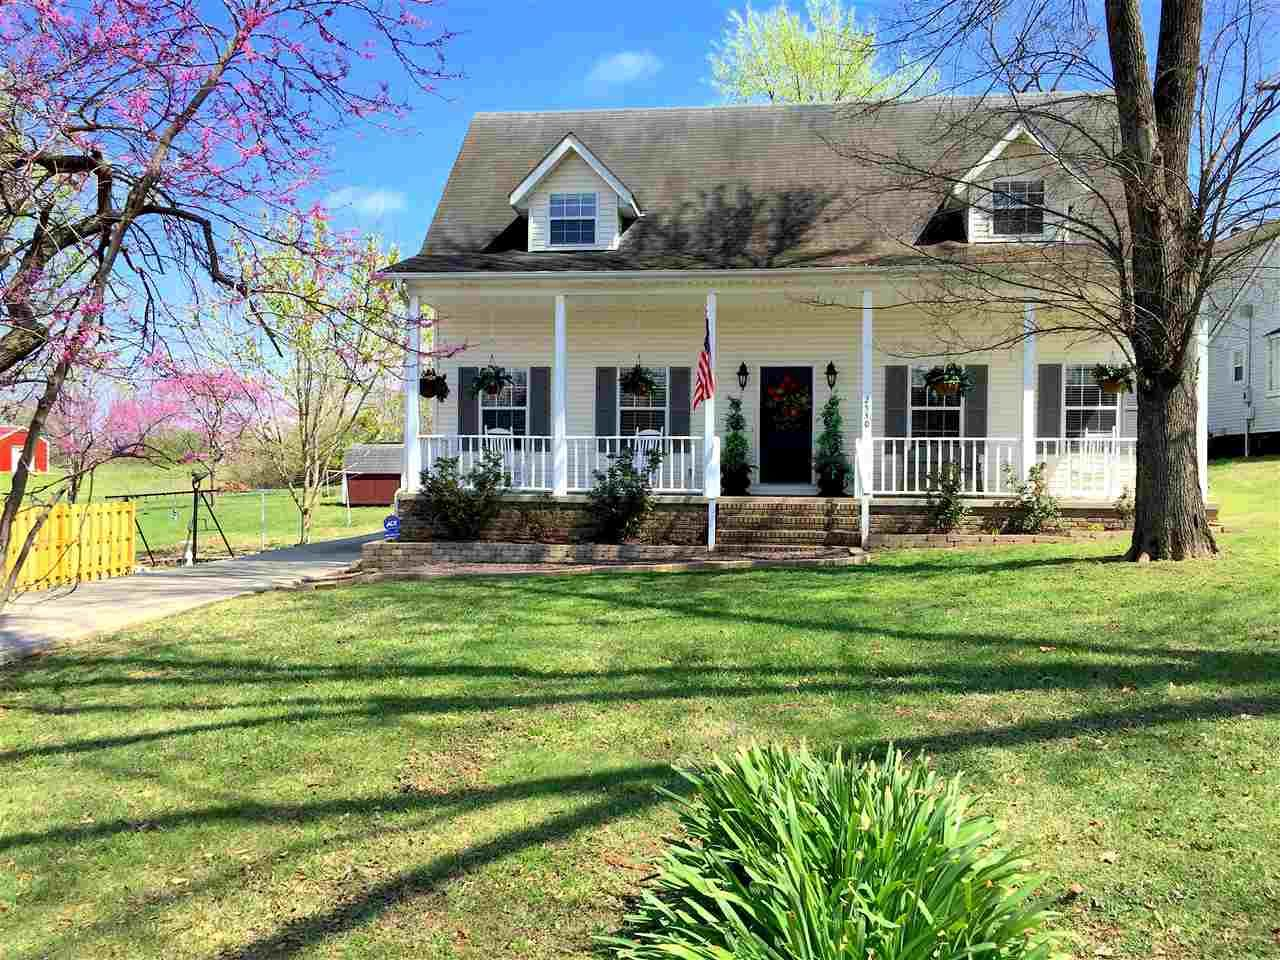 3 bd, 2 bath, 1.5 story home on North Main For Rent in